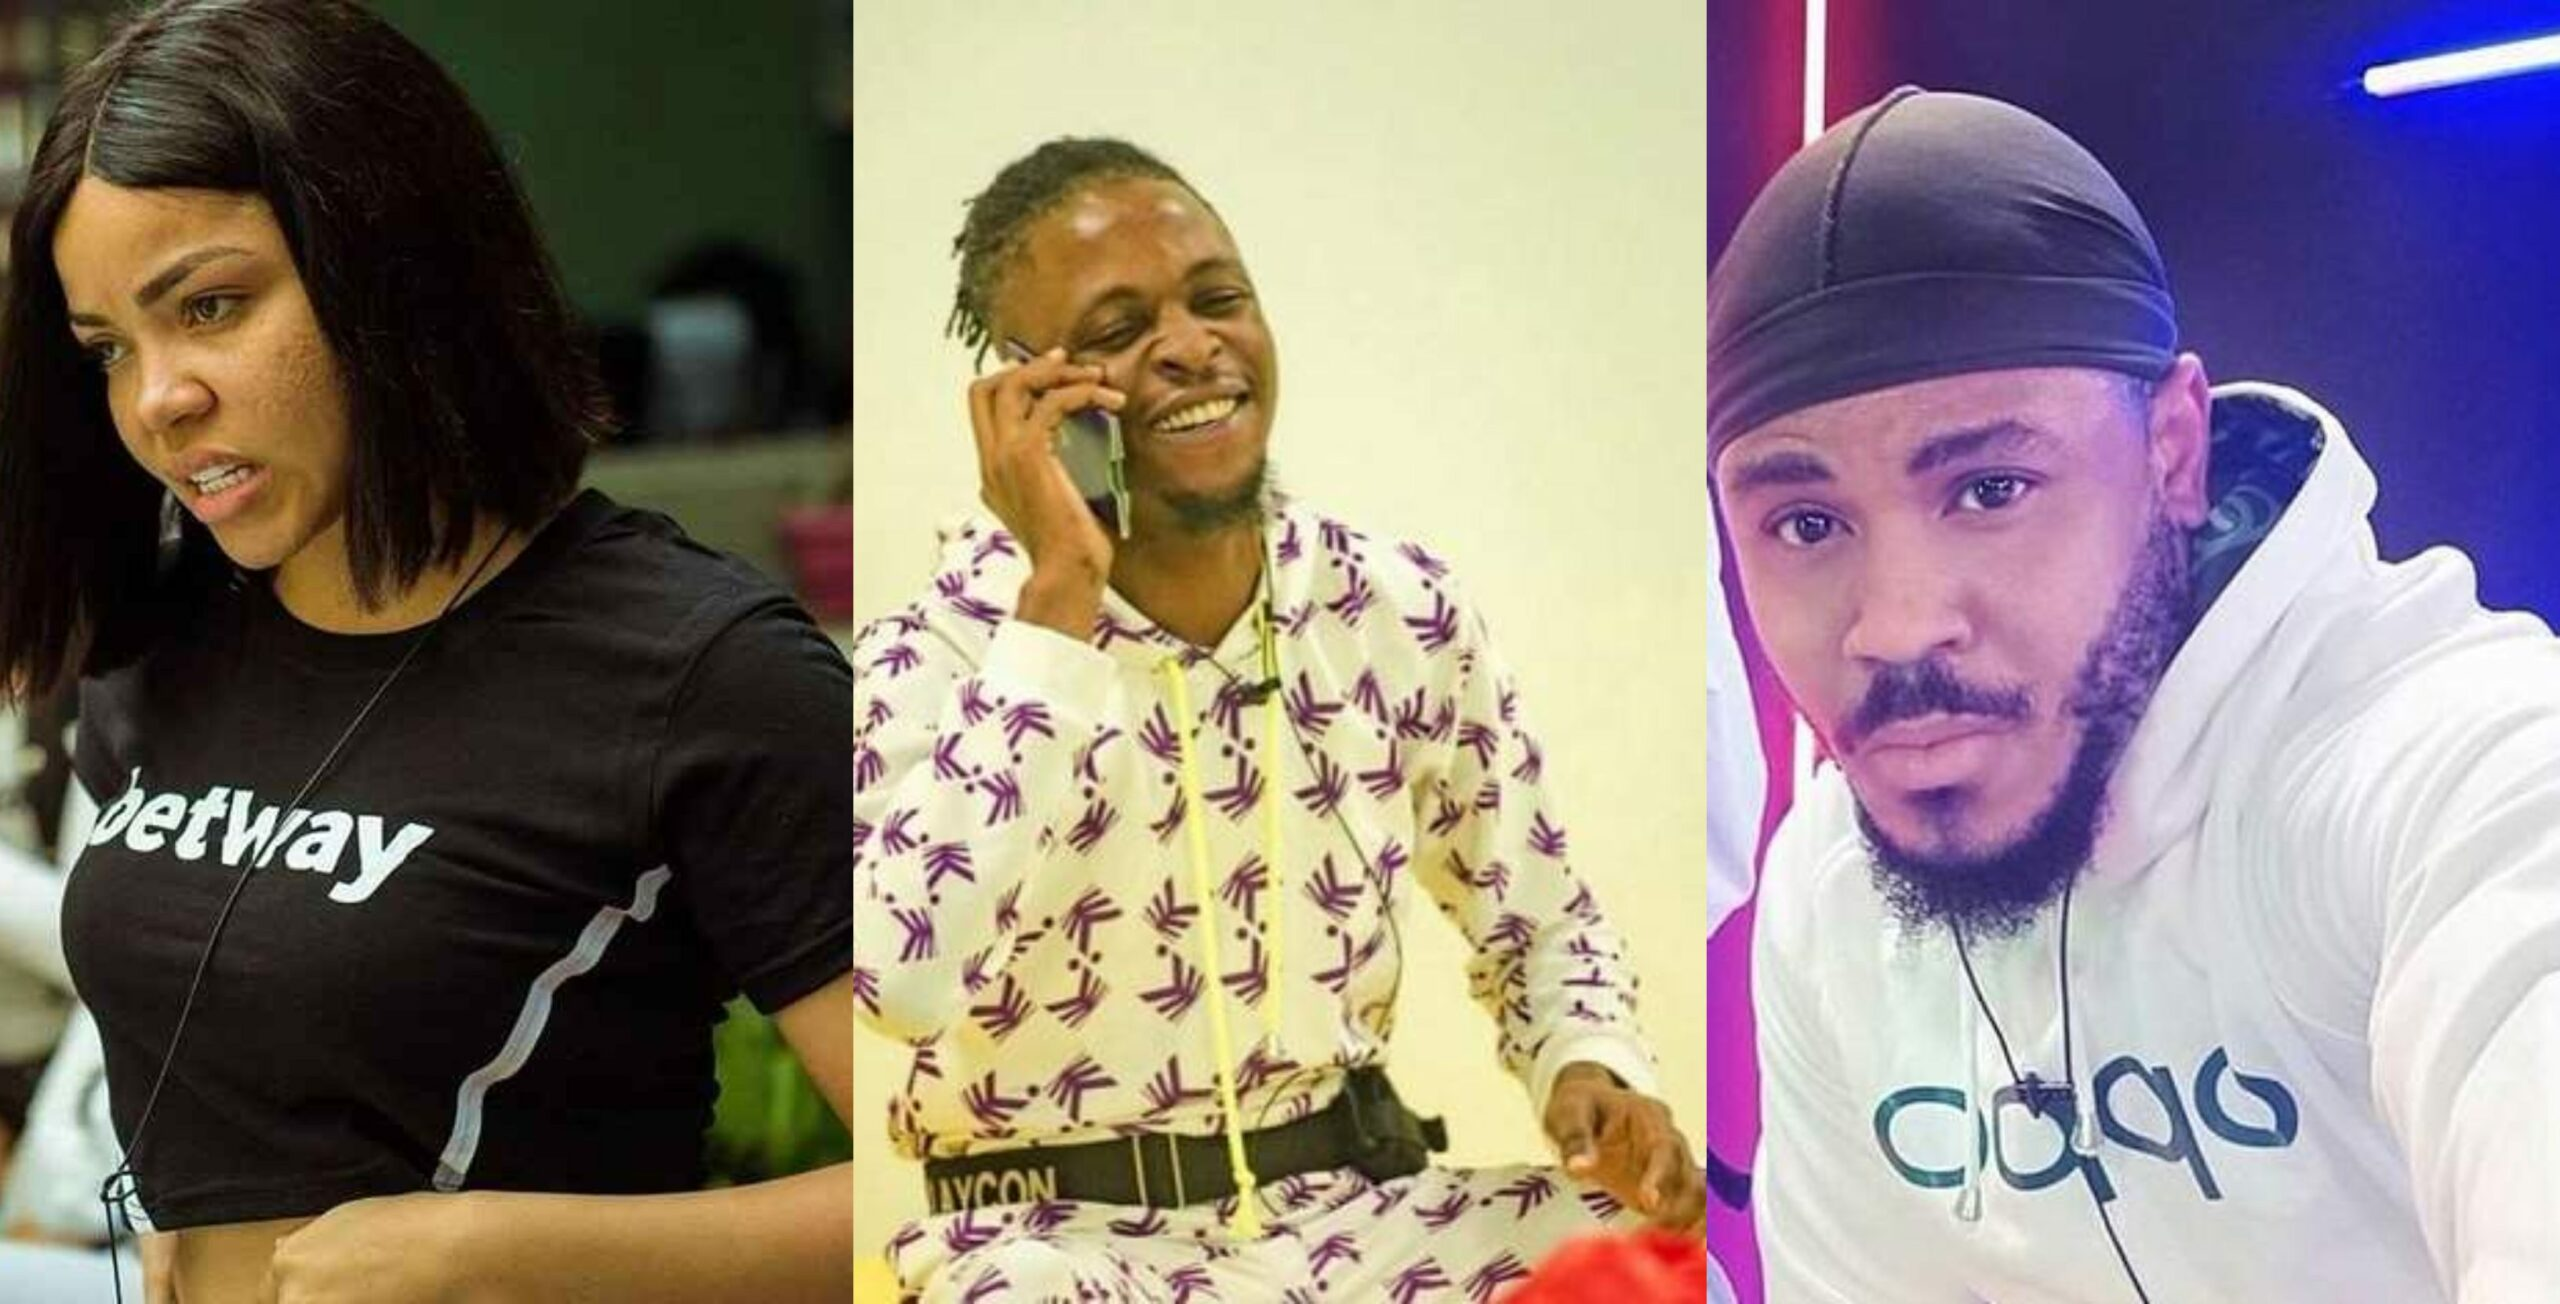 BBNAIJA: See All The Housemates Who Won Money & Other Gifts On The Show - Laycon's total Net worth is over N100 million